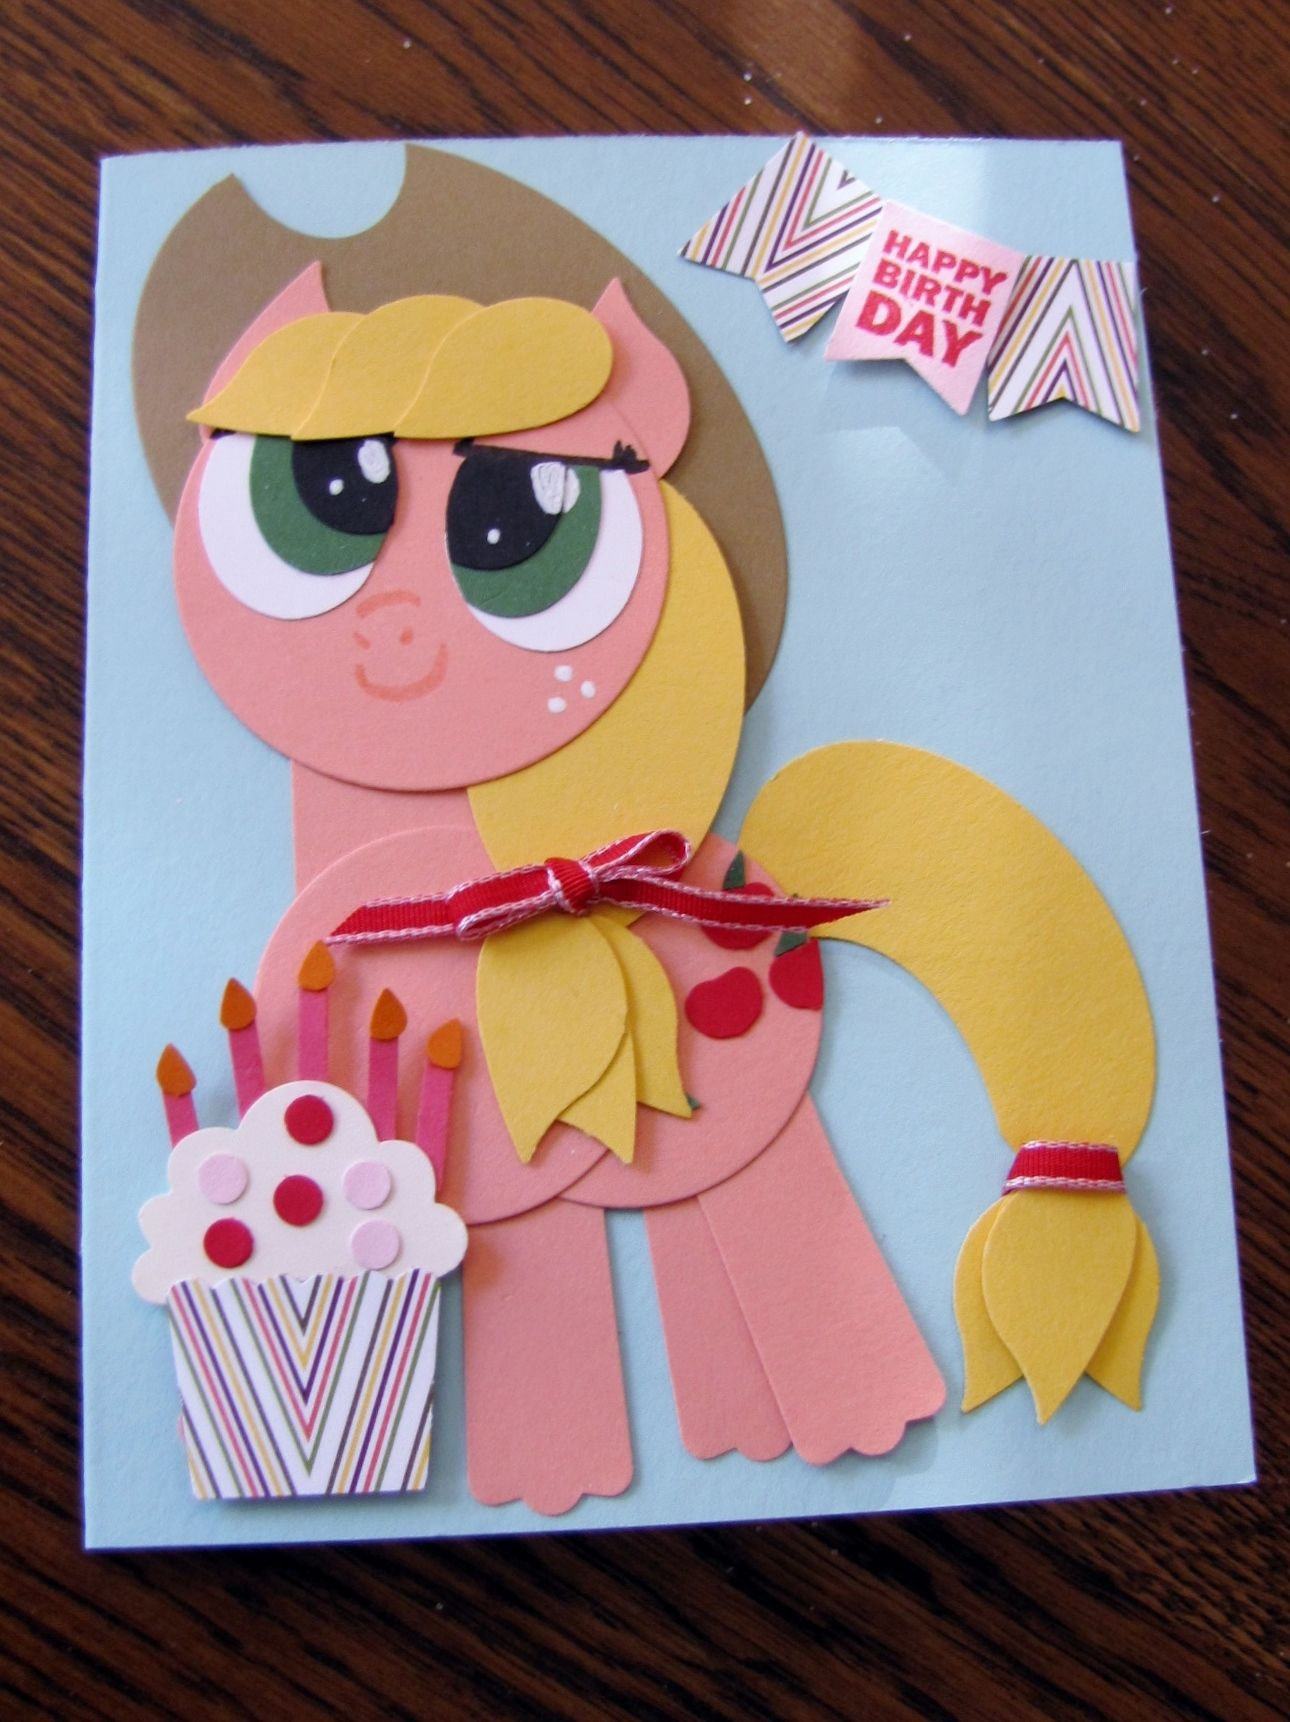 My Little Pony Applejack Punch Art Birthday Card